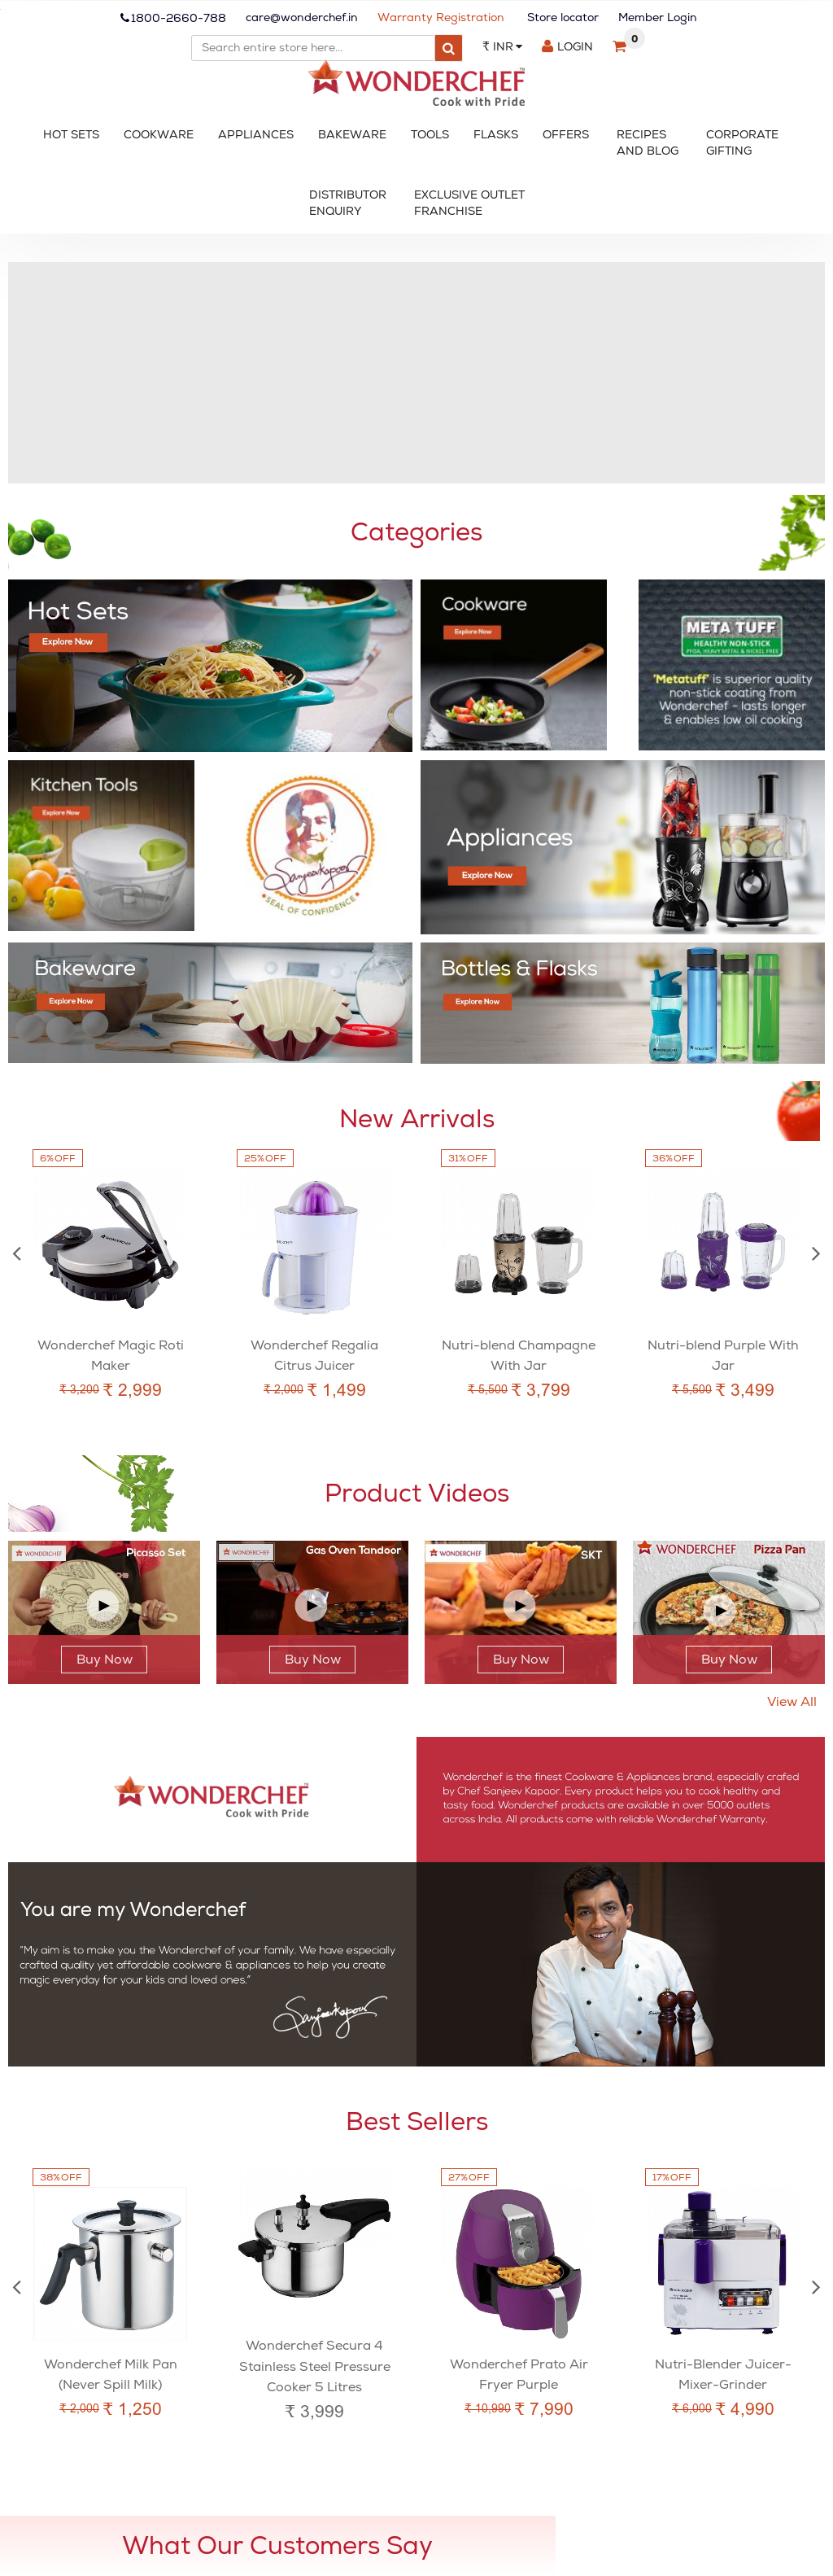 Wonderchef Competitors, Revenue and Employees - Owler